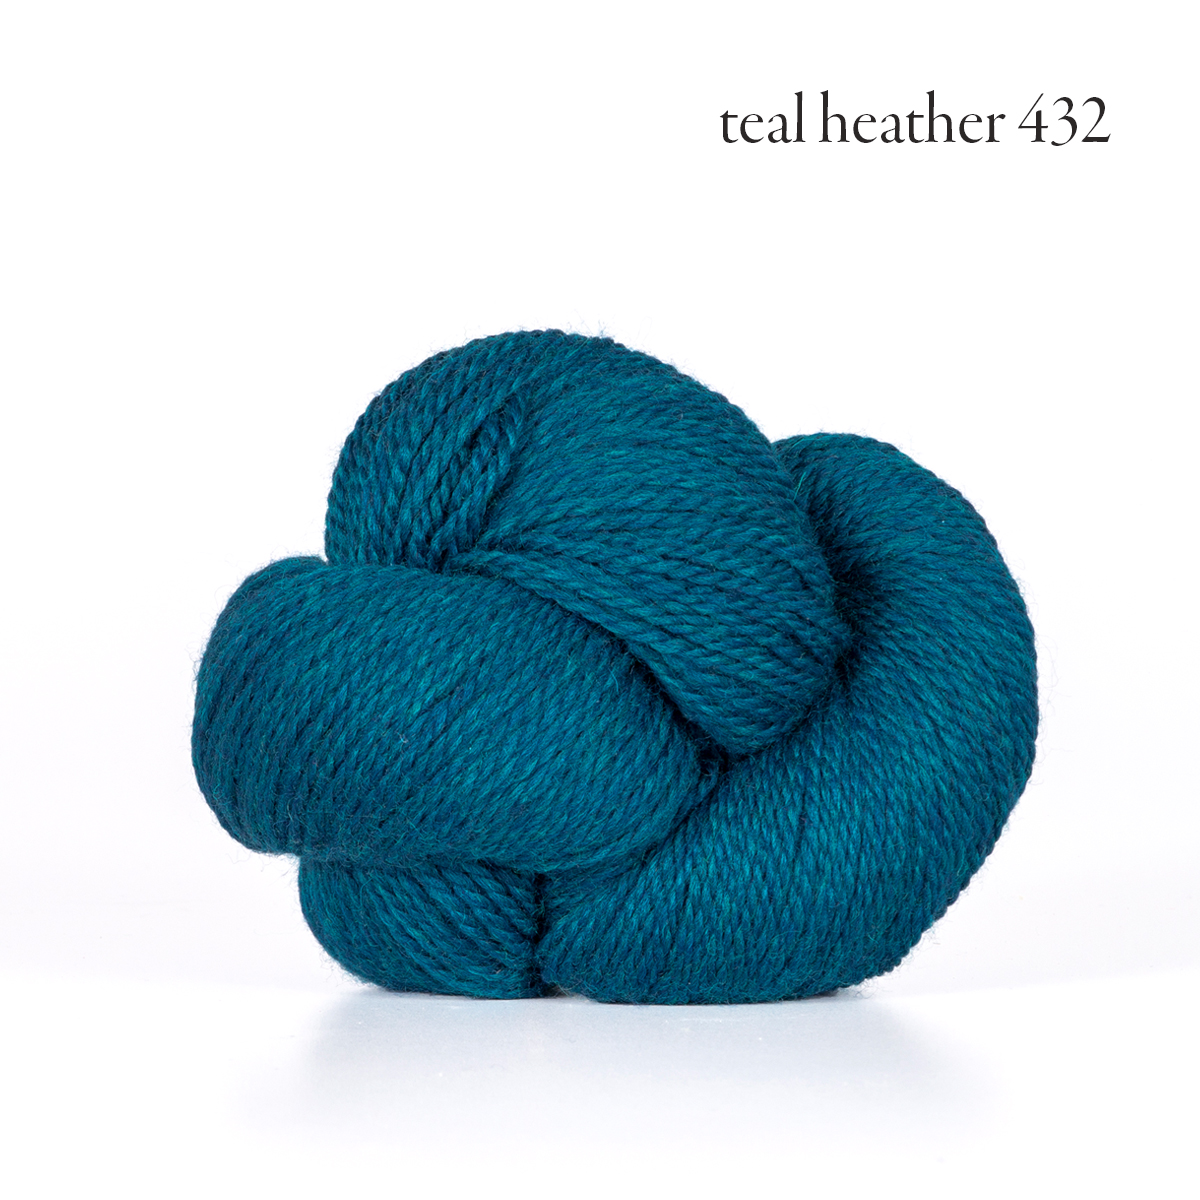 teal heather 432.jpg